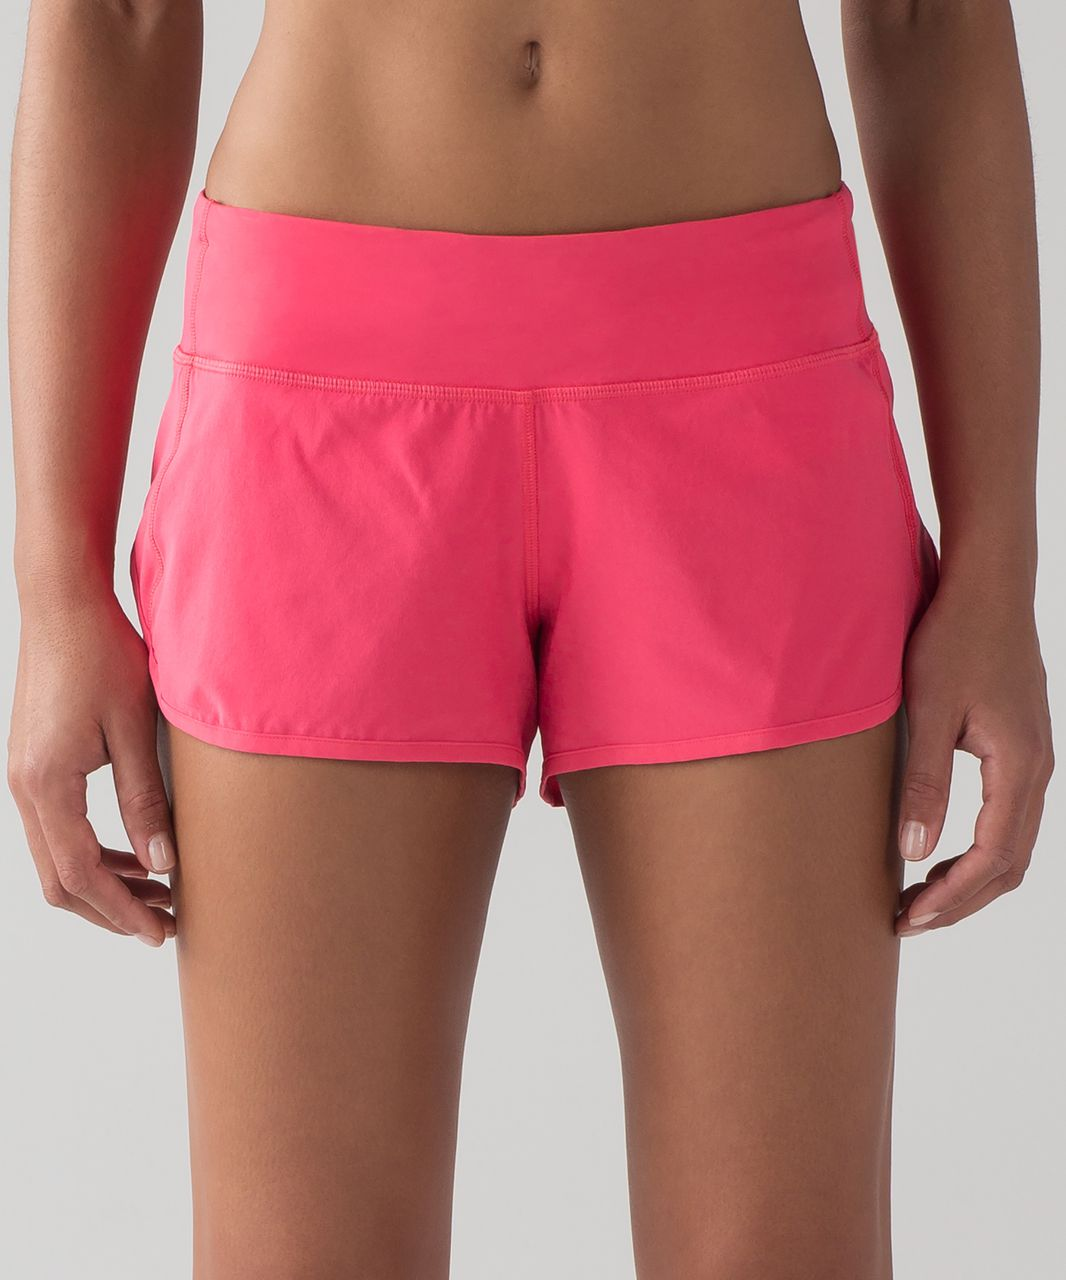 "Lululemon Speed Short (4-way Stretch 2 1/2"") - Lip Gloss"